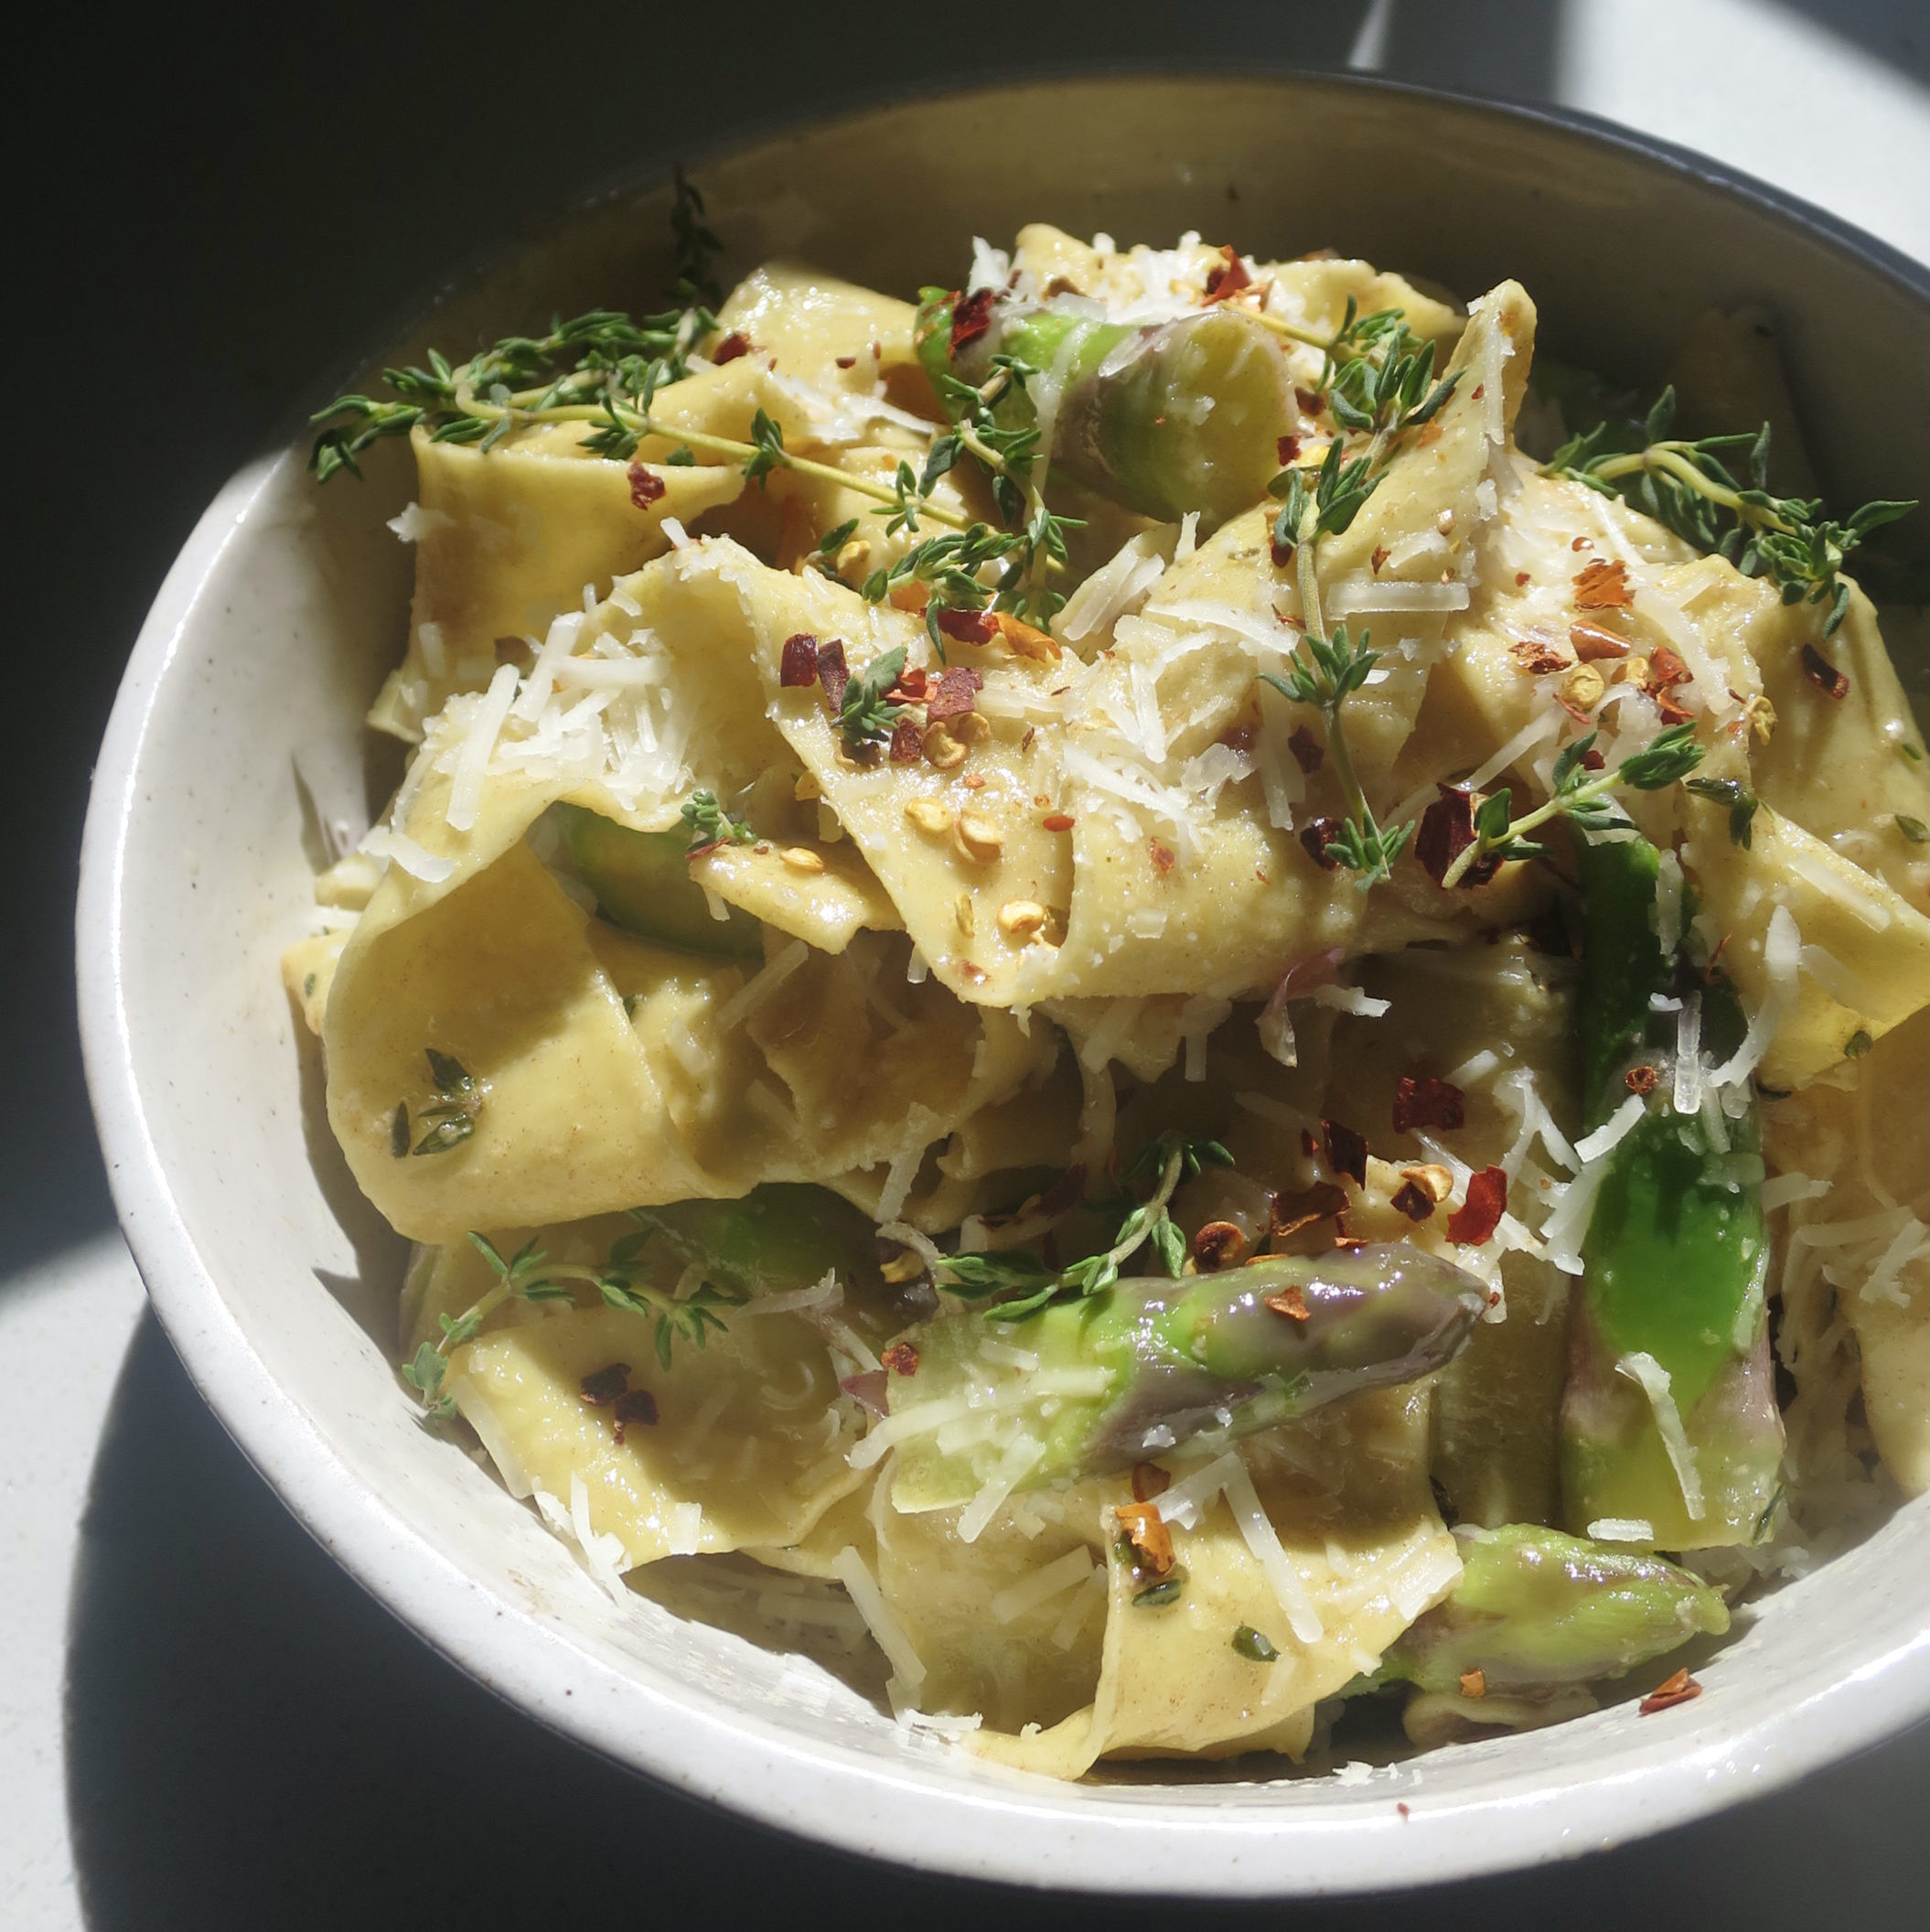 Homemade Pasta with Asparagus and Lemon